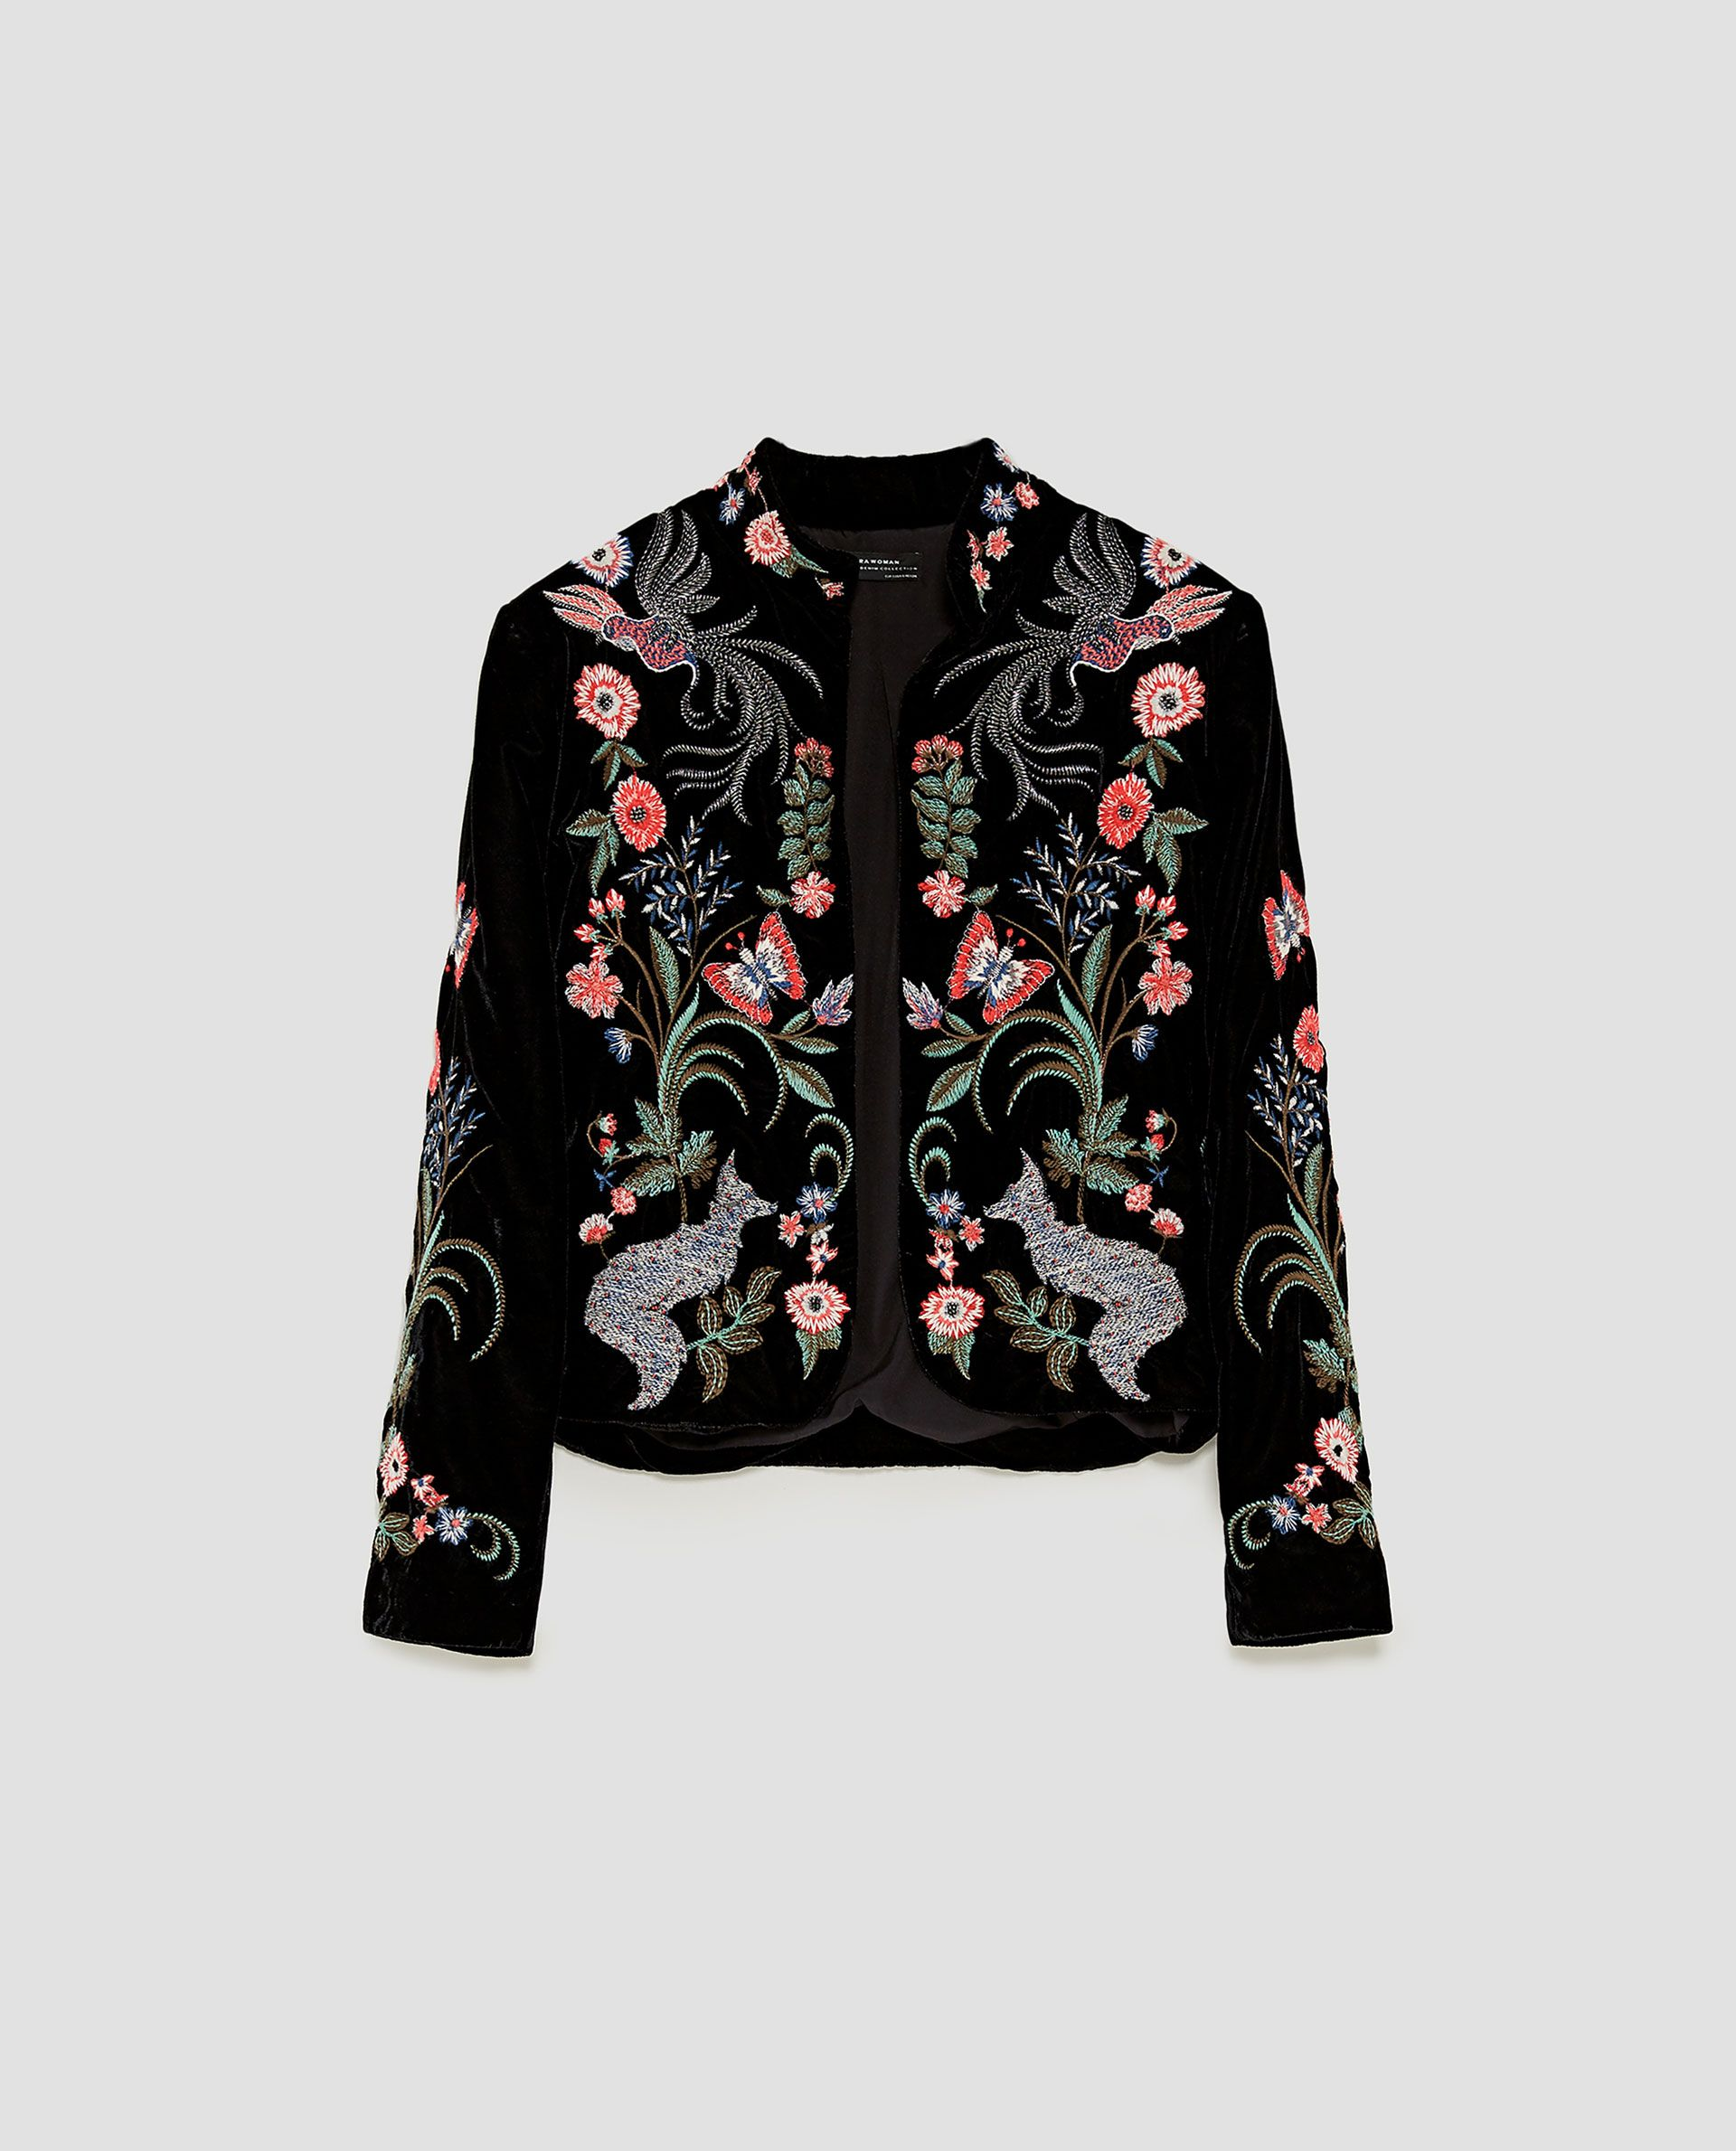 551c8afea06f EMBROIDERED VELVET JACKET from Zara | clothing (want). in 2019 ...